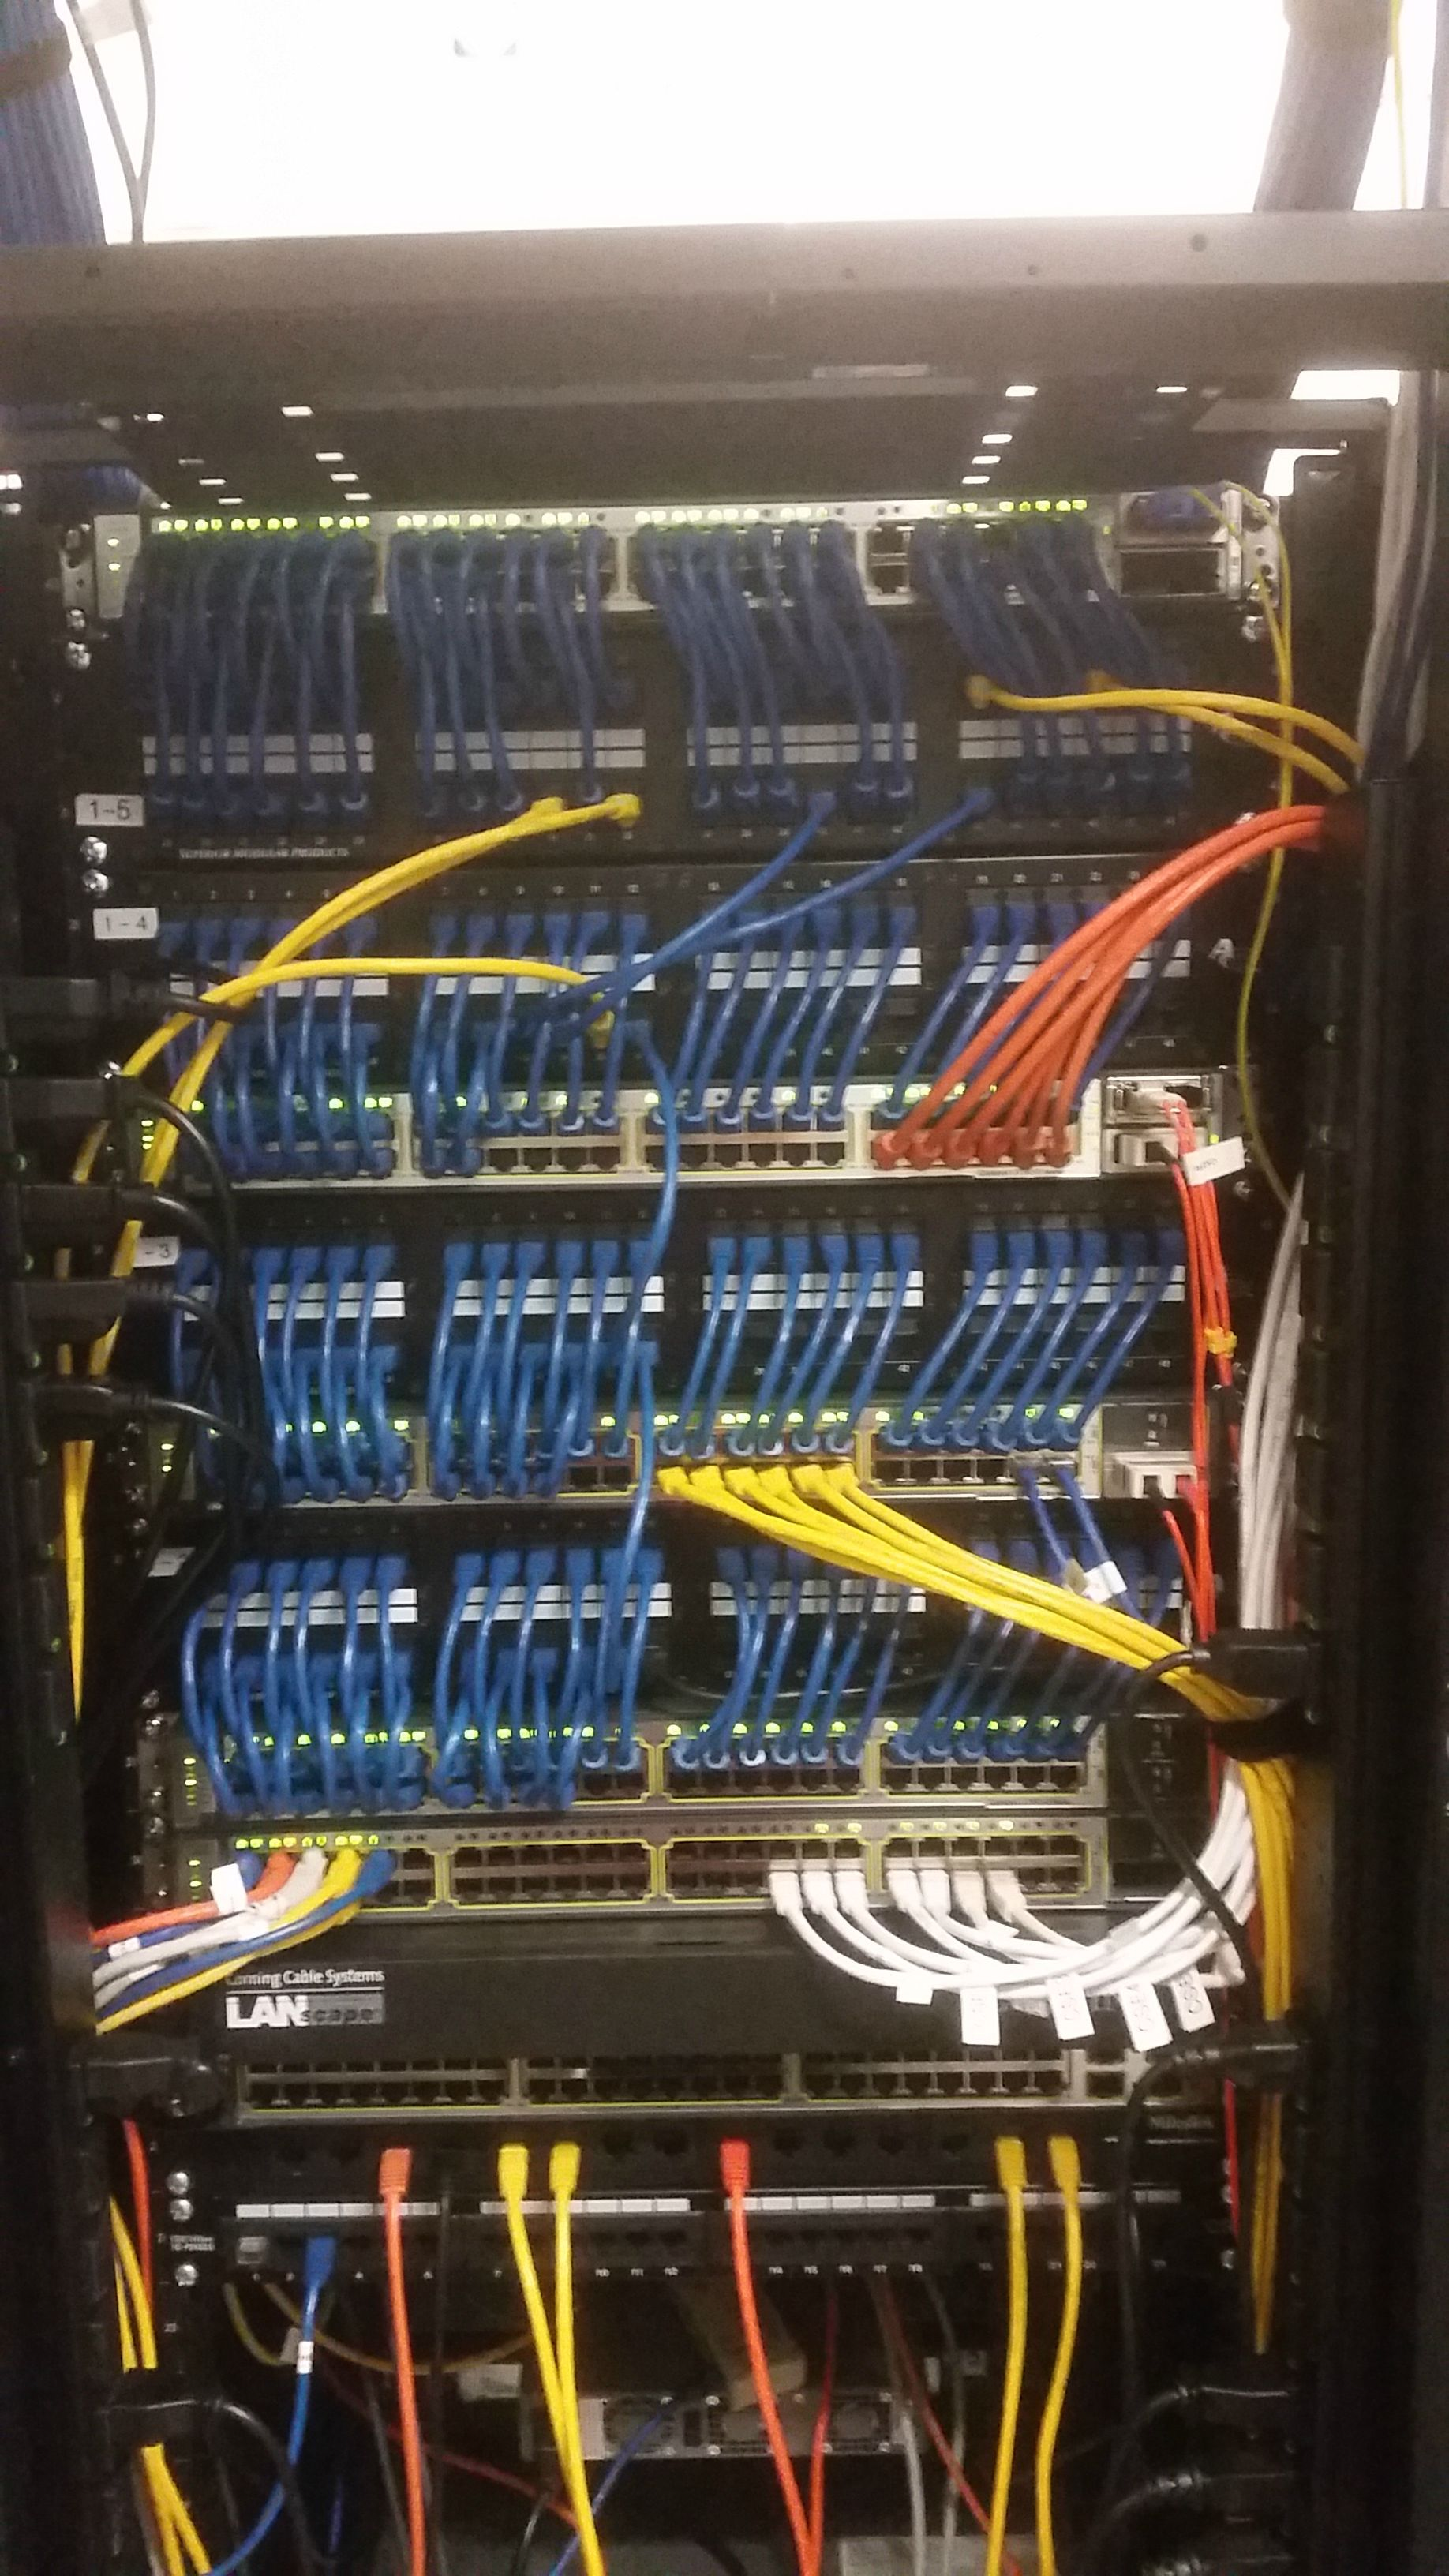 medium resolution of cleaning up a network rack cisco switches into patch panels clean job believe orange and yellow are powered but could be wrong